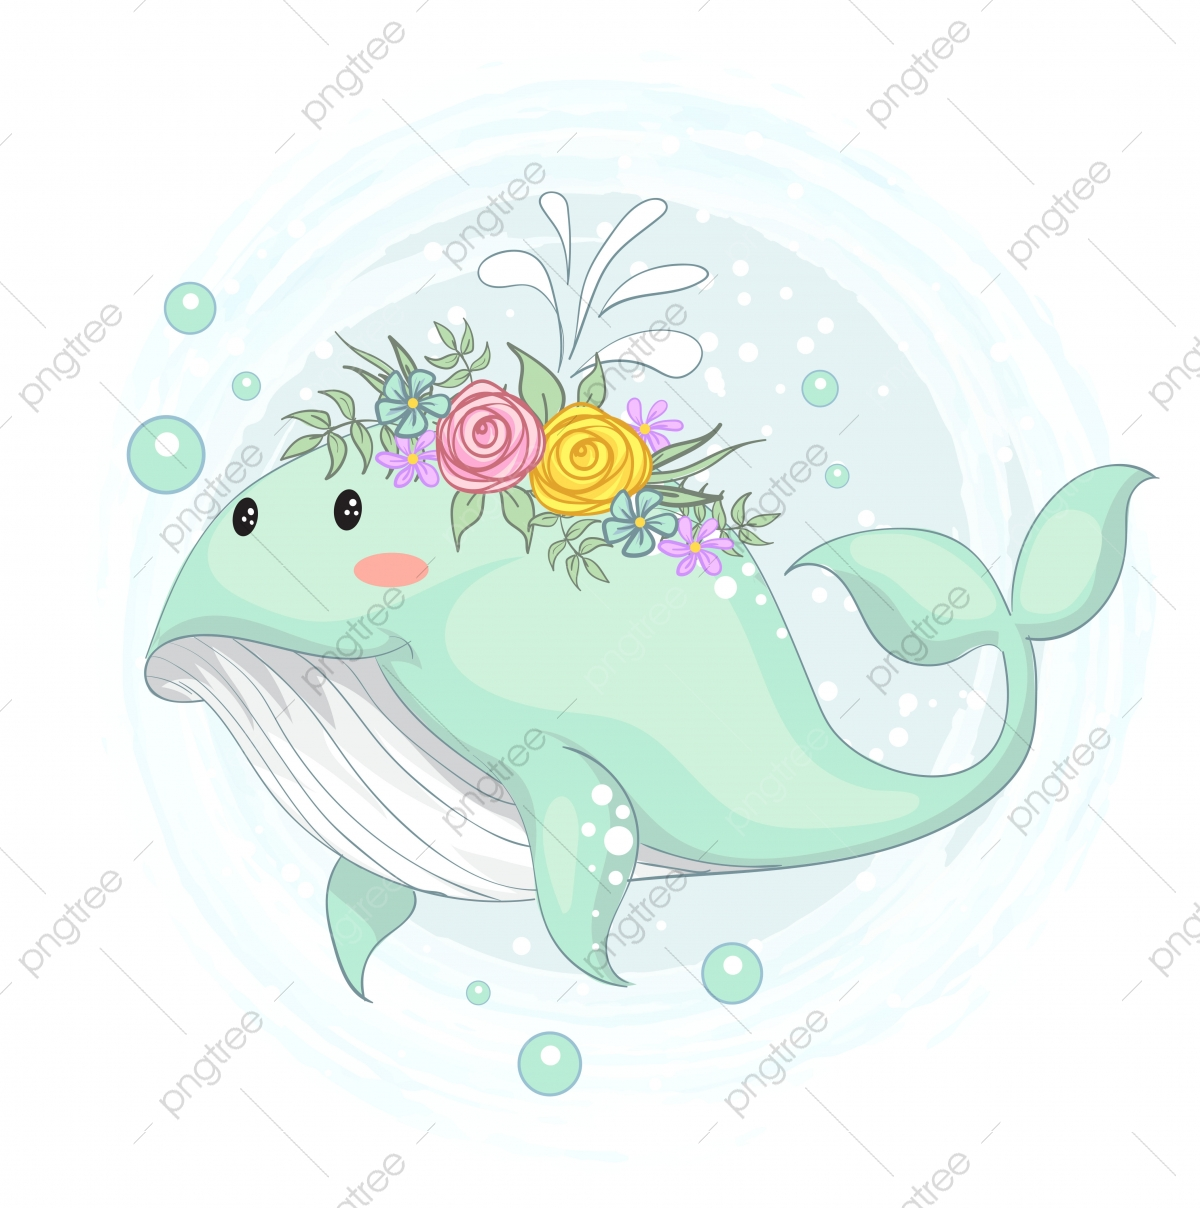 Flower Crown Png Images Vector And Psd Files Free Download On Pngtree Buy cheap cartoon skulls online from china today! https pngtree com freepng vector illustration of a cute whale with a flower crown hand draw 5103530 html